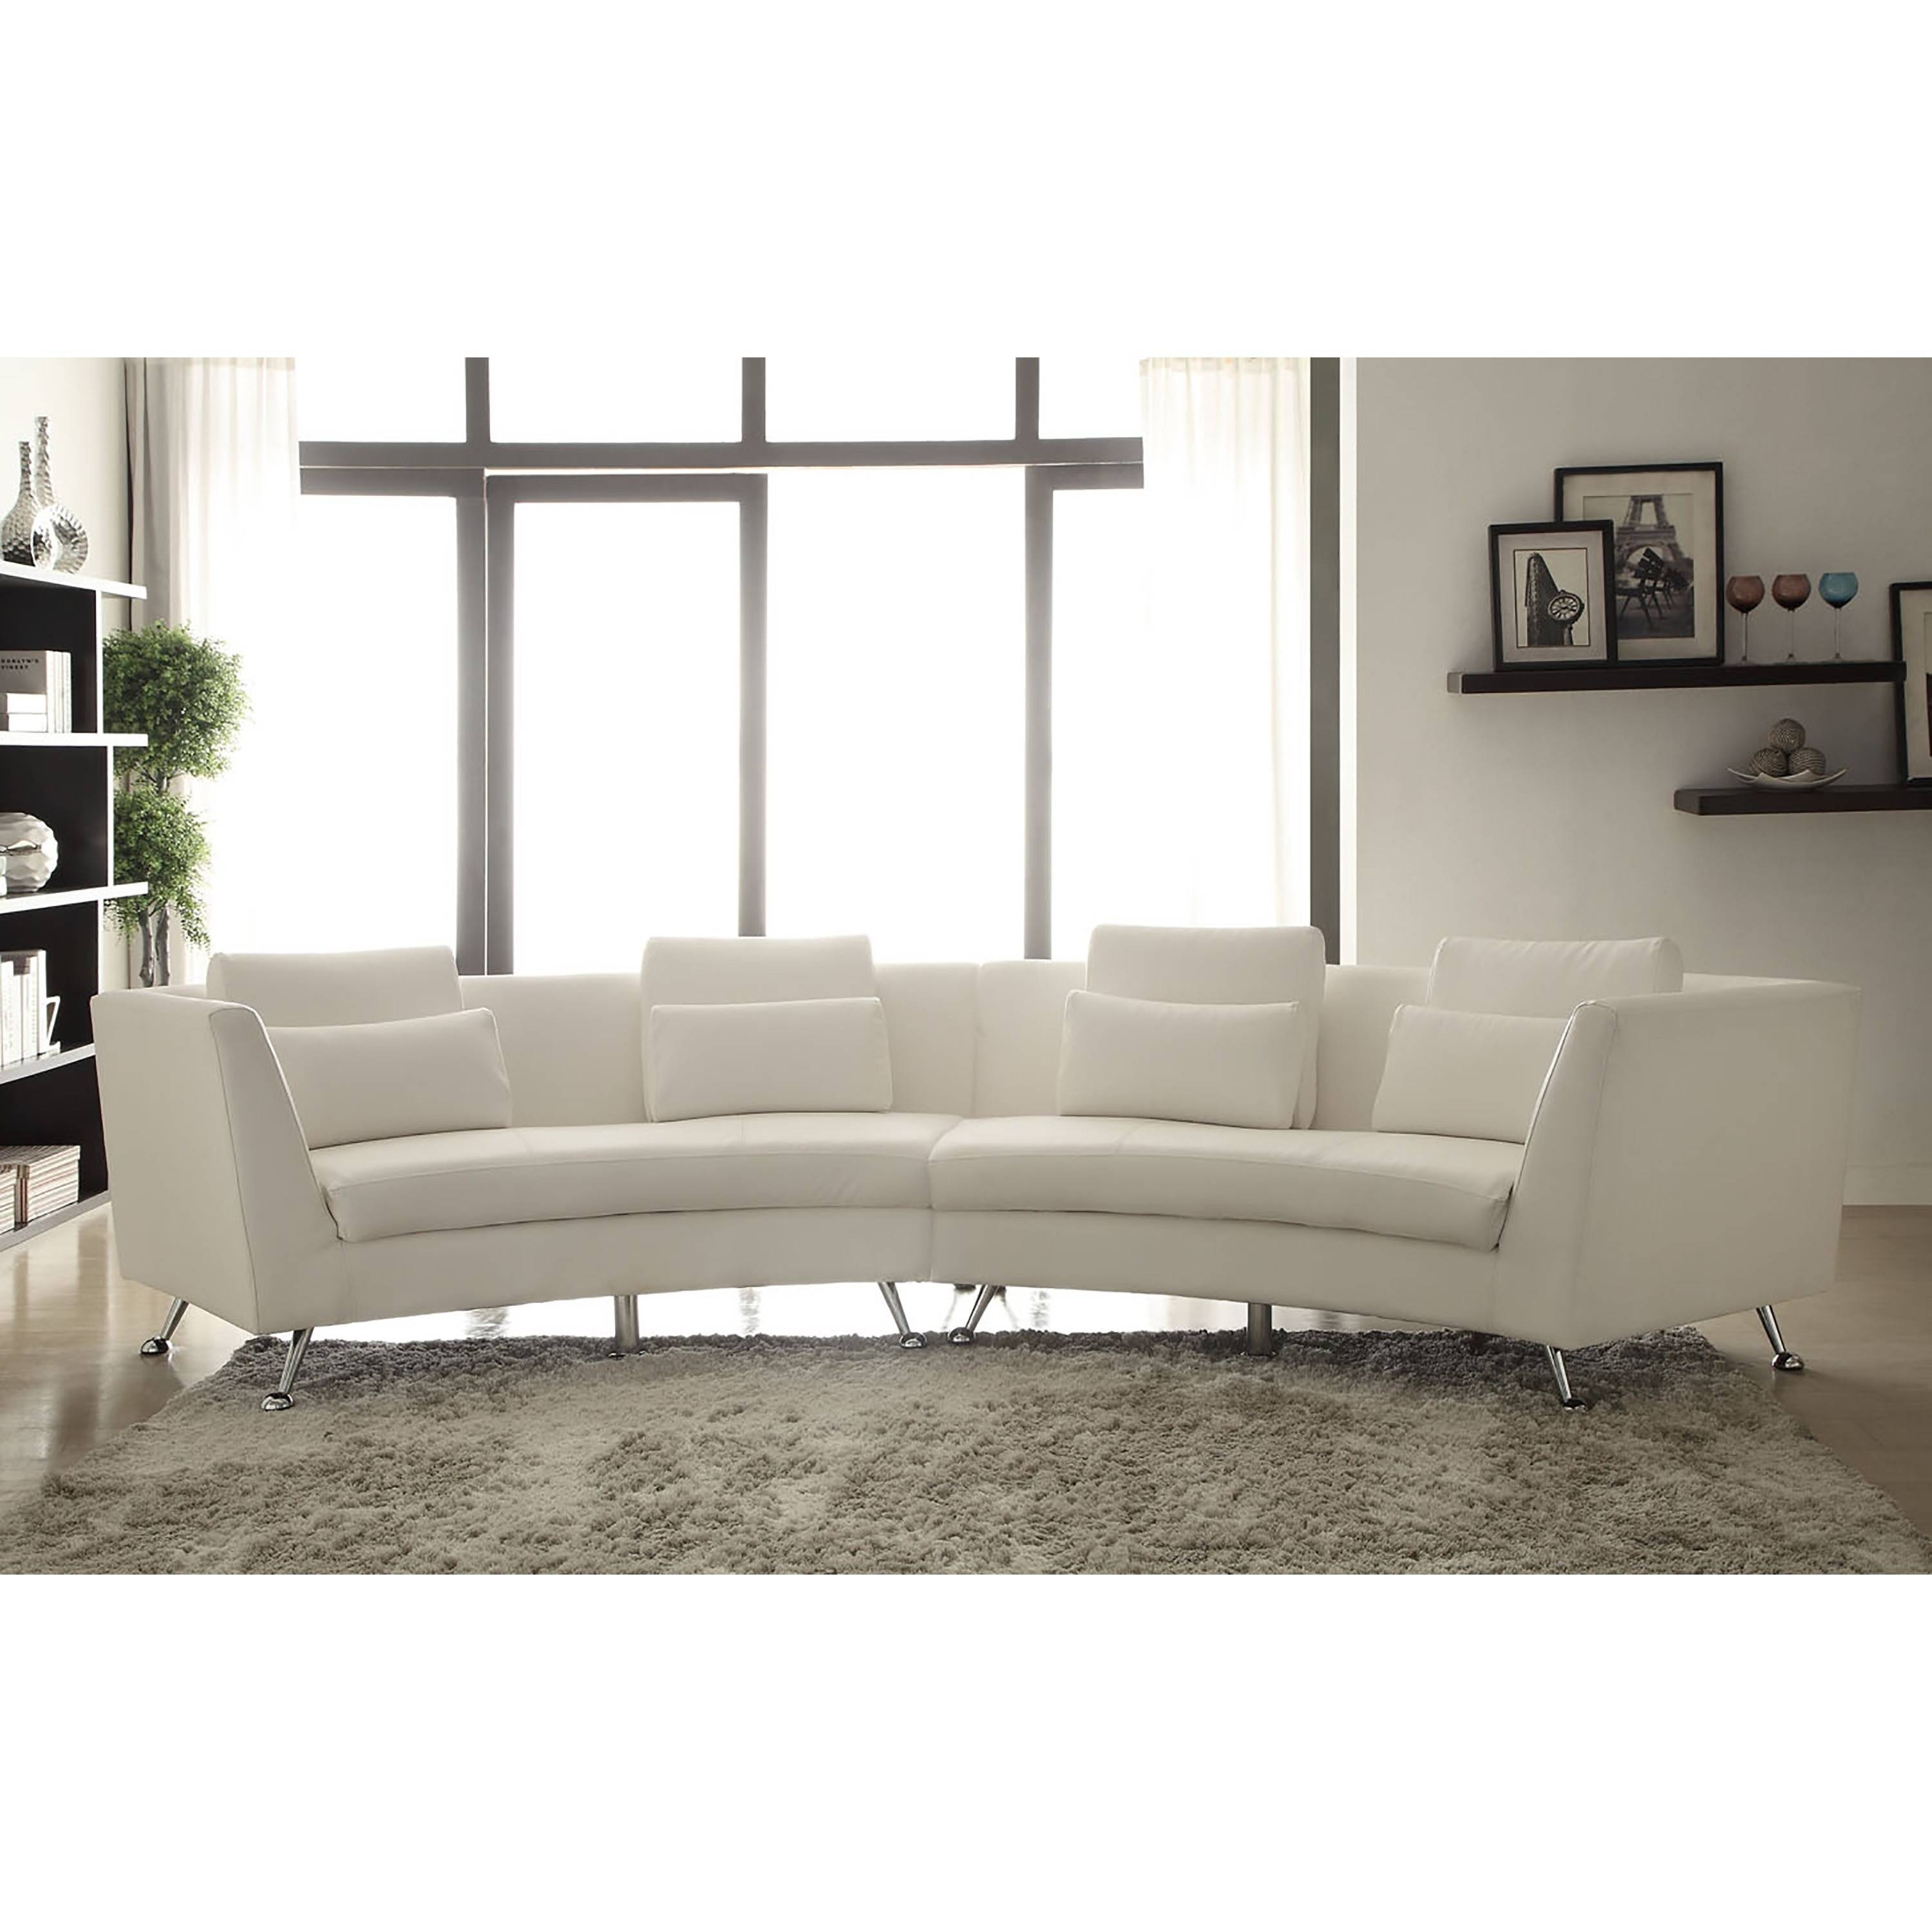 Oval Sofas White Fabric Sofa With Colorful Cushions Plus Round pertaining to Oval Sofas (Image 22 of 30)